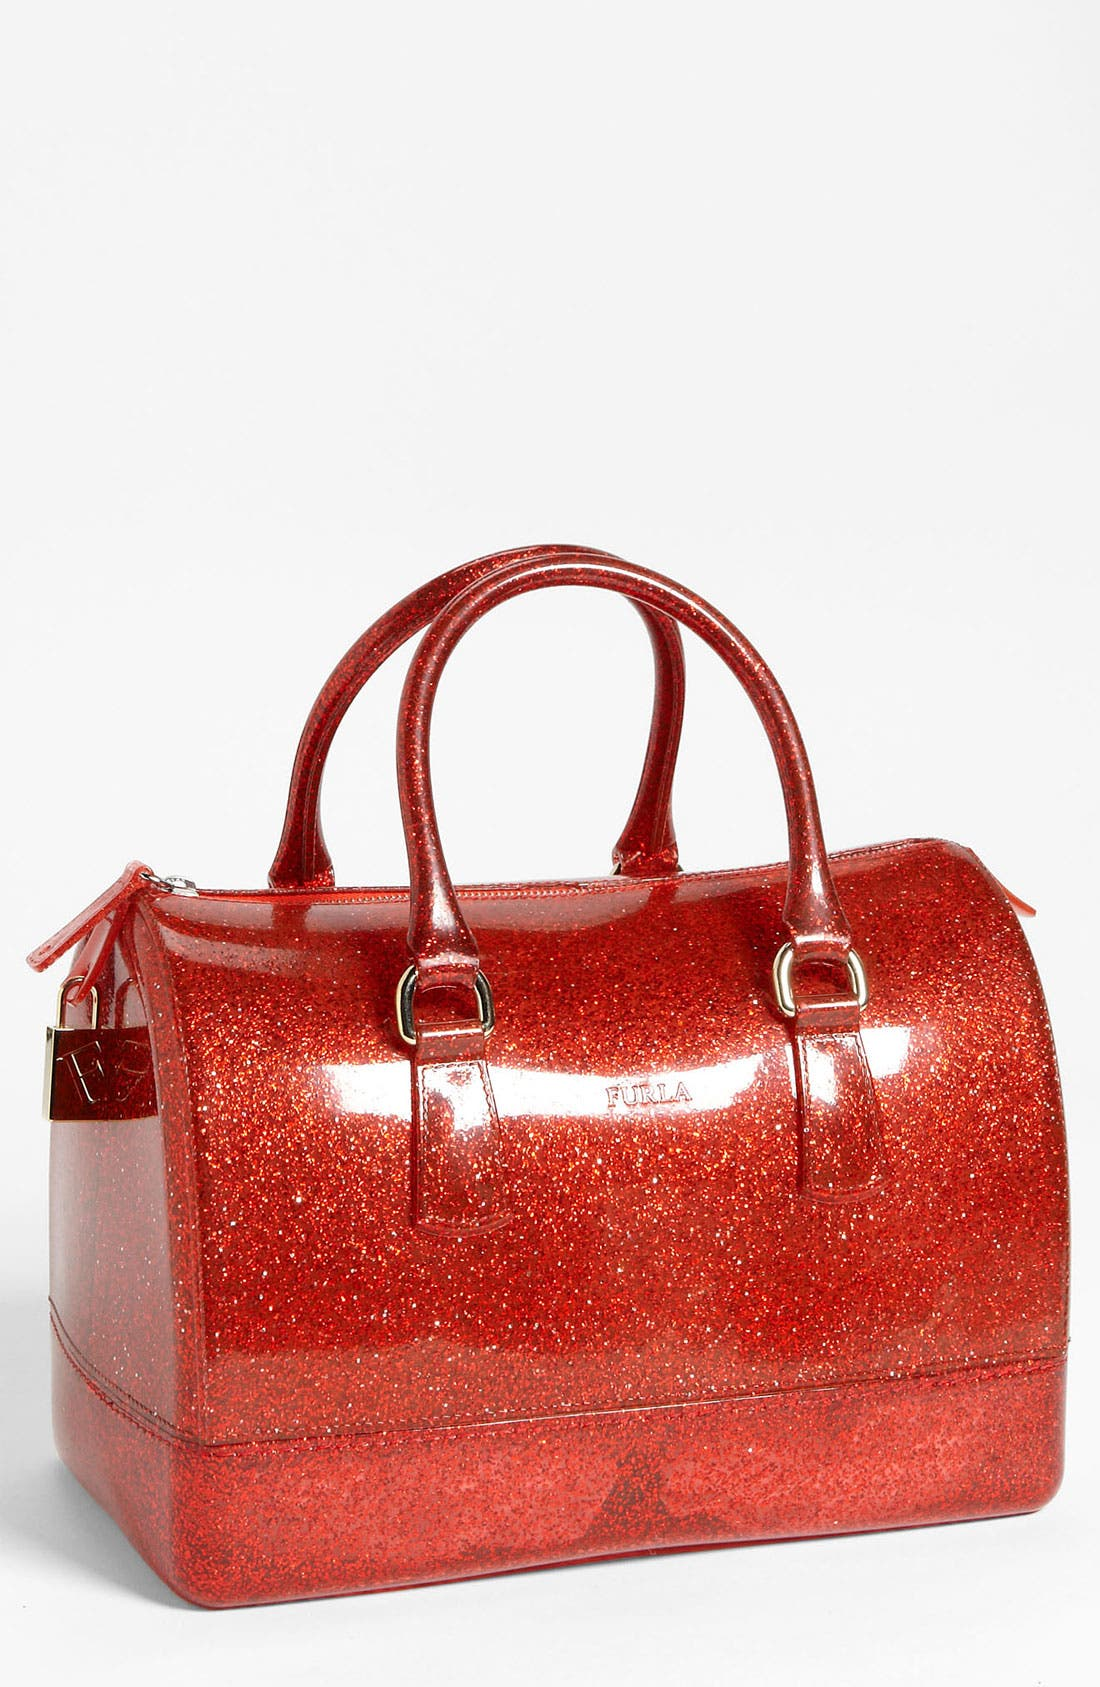 Alternate Image 1 Selected - Furla 'Candy - Glitter' Rubber Satchel